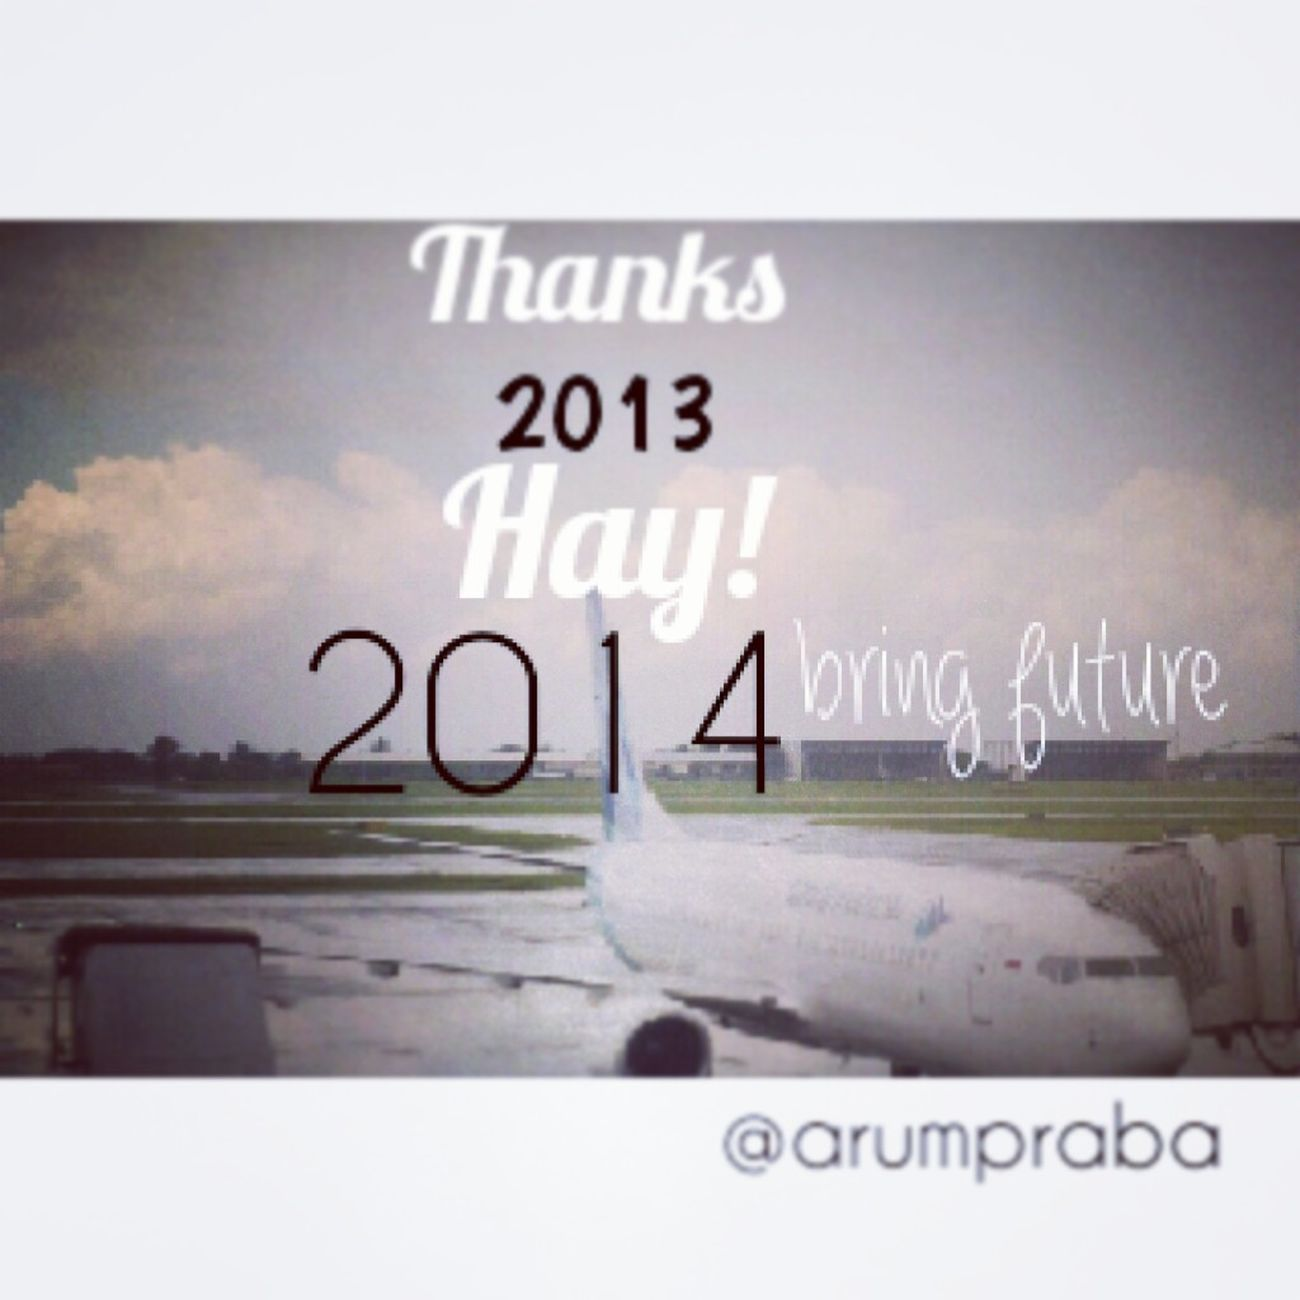 last post and last day at 2013 New Year Wish Juanda International Airport Last Day 2013